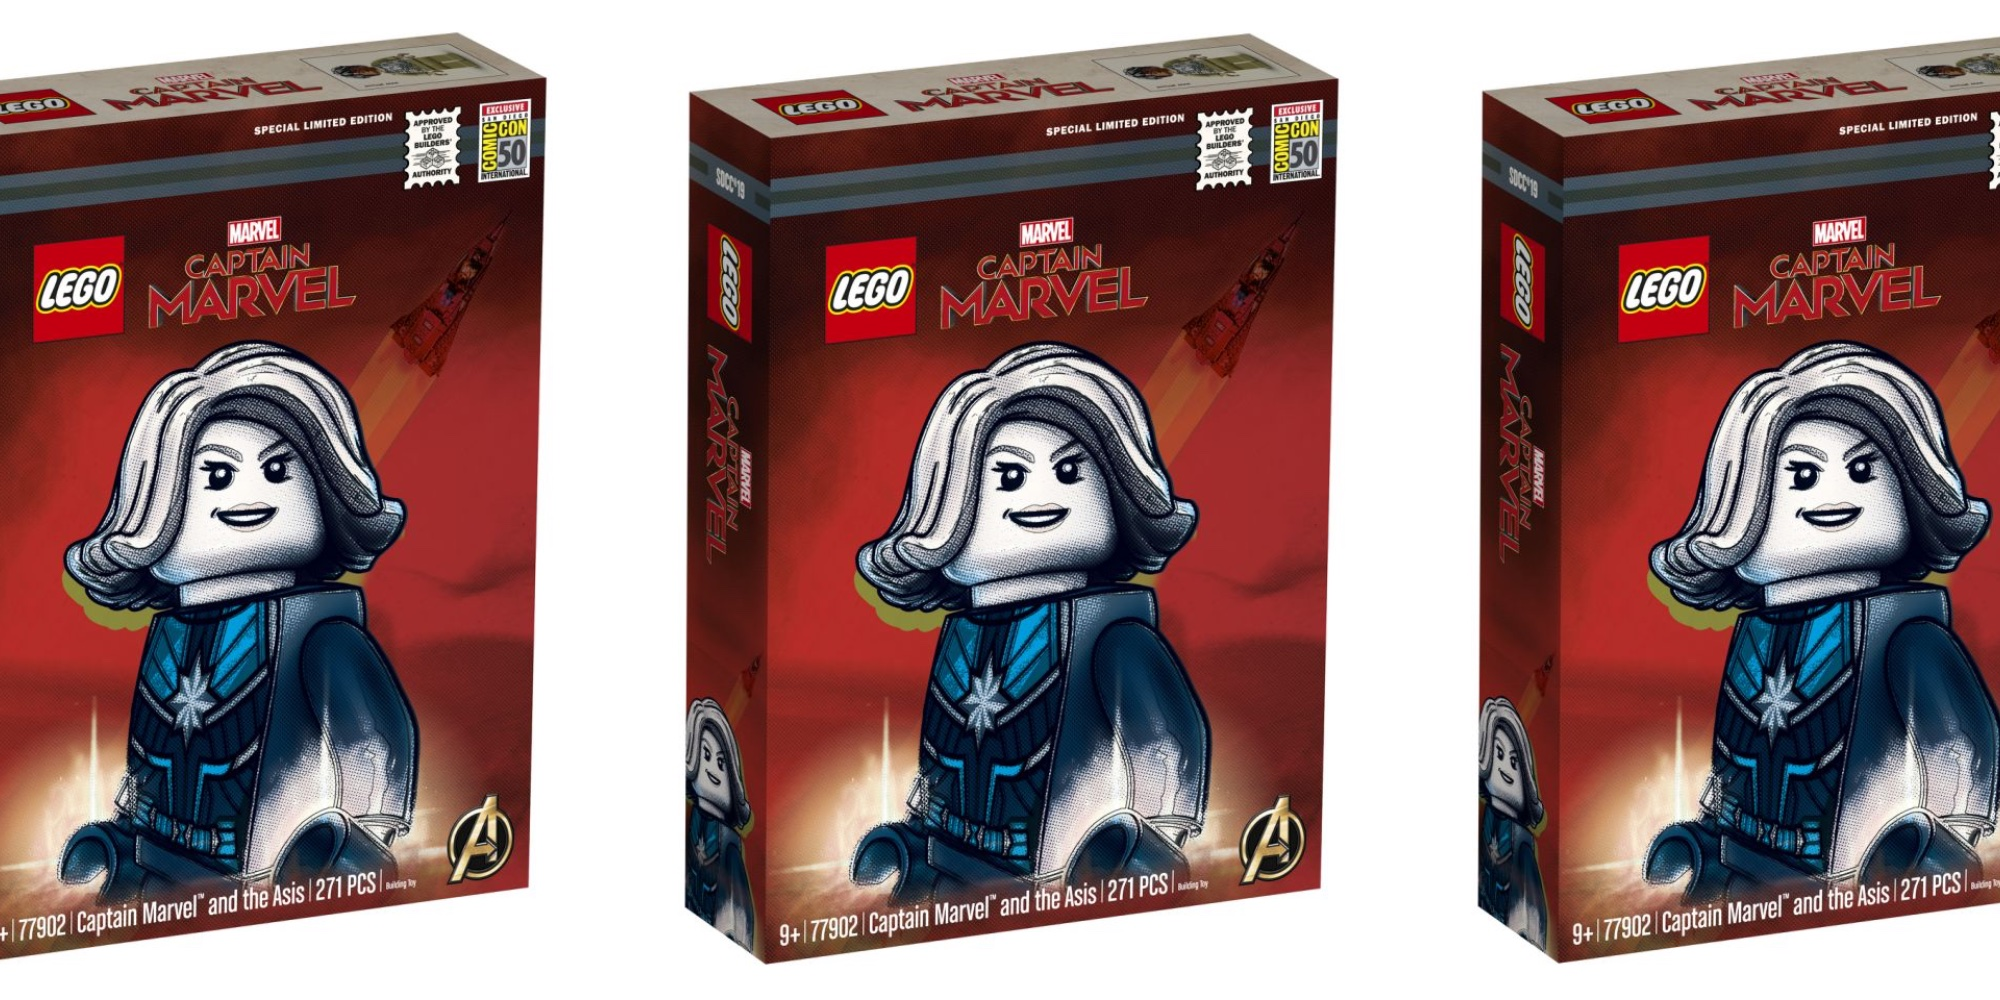 LEGO Captain Marvel SDCC